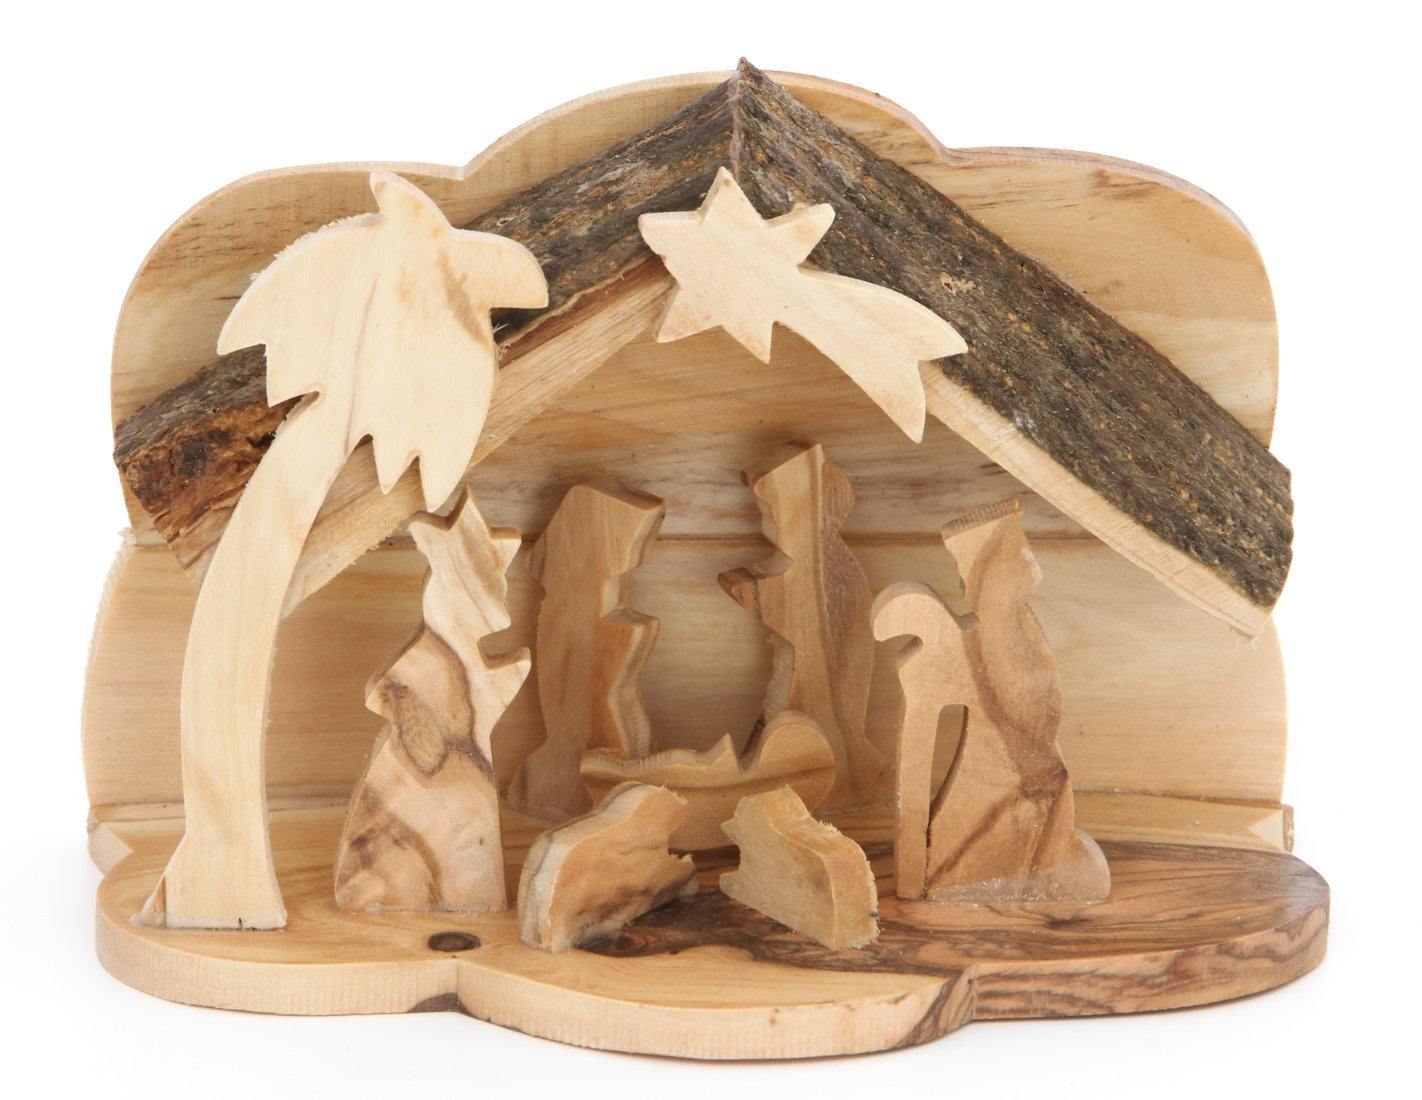 Zuluf Olive Wood Nativity Bark Roof Small NAT007 by Zuluf (Image #1)